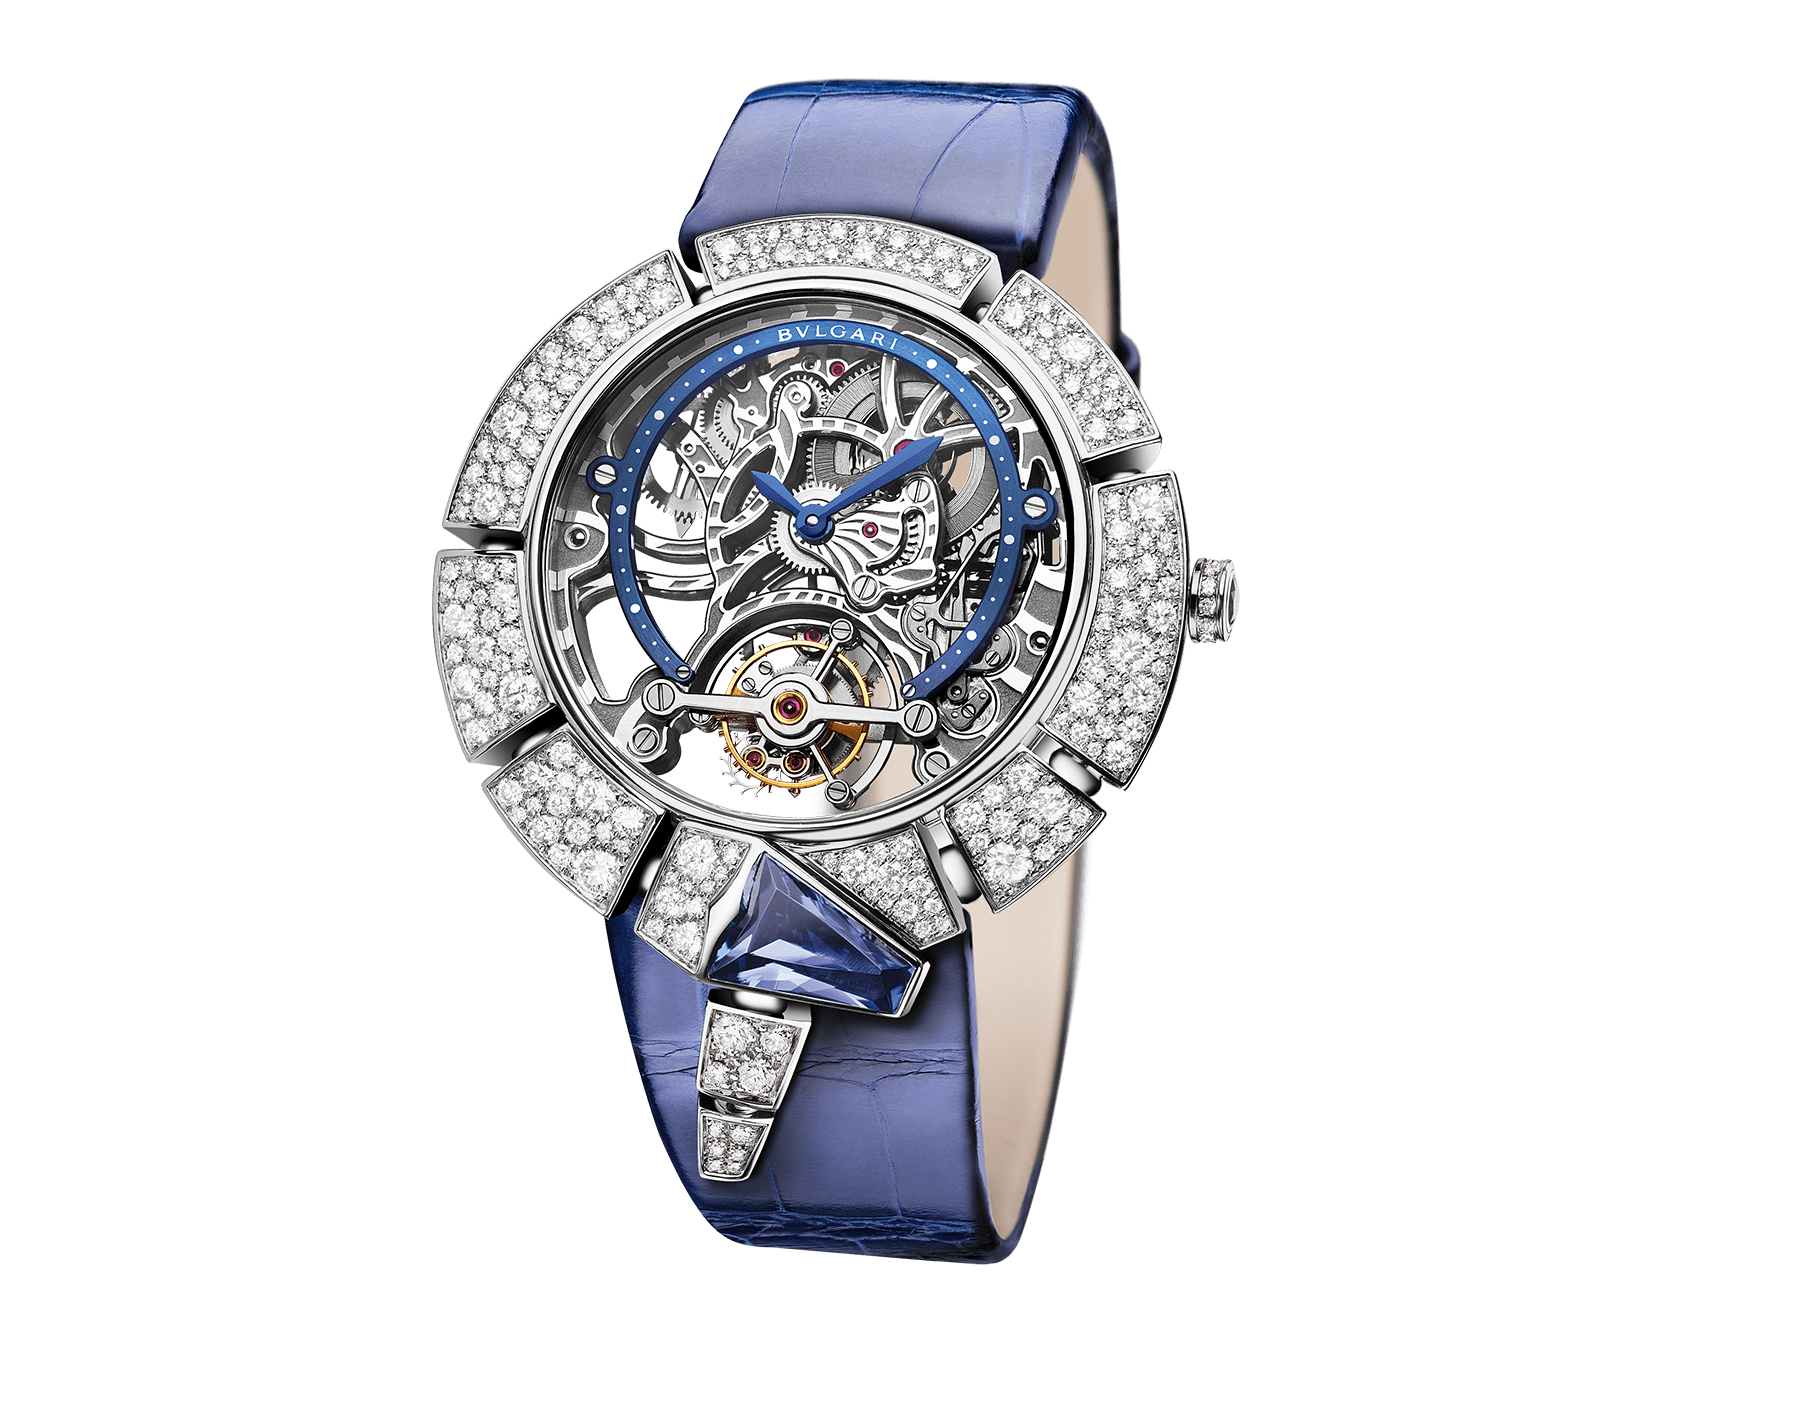 Serpenti Incantati Tourbillon watch with manufacture mechanical skeletonized movement, manual winding, 18 kt white gold case set with brilliant cut diamonds and a tanzanite, transparent dial and blue alligator bracelet. 102723 image 2